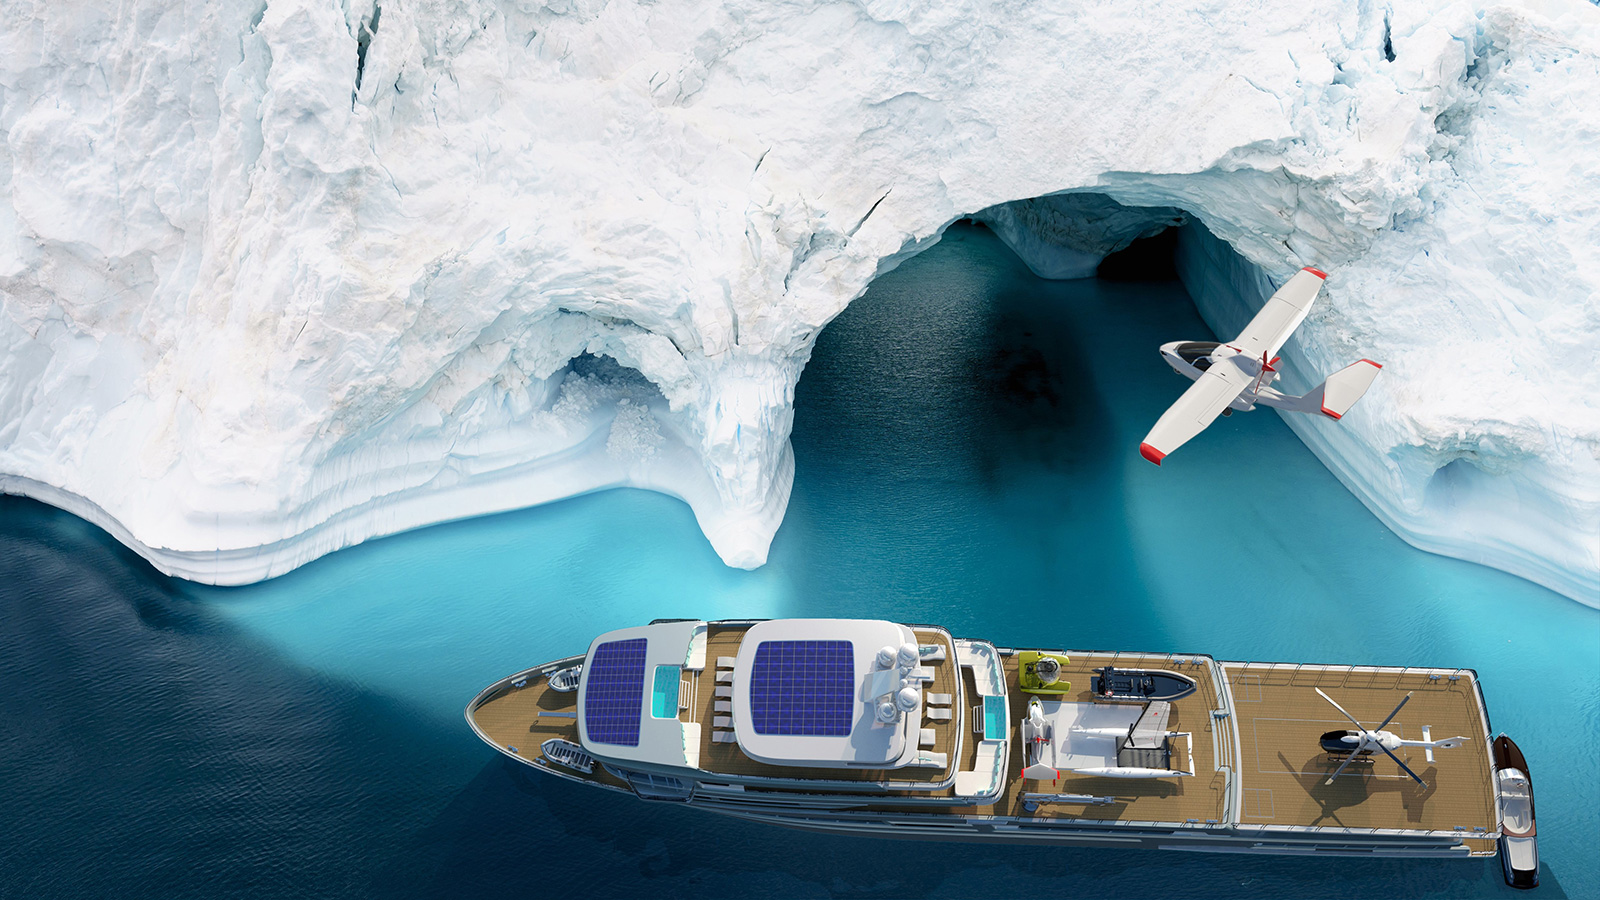 aerial-view-of-the-gill-schmid-explorer-yacht-concept-mystique